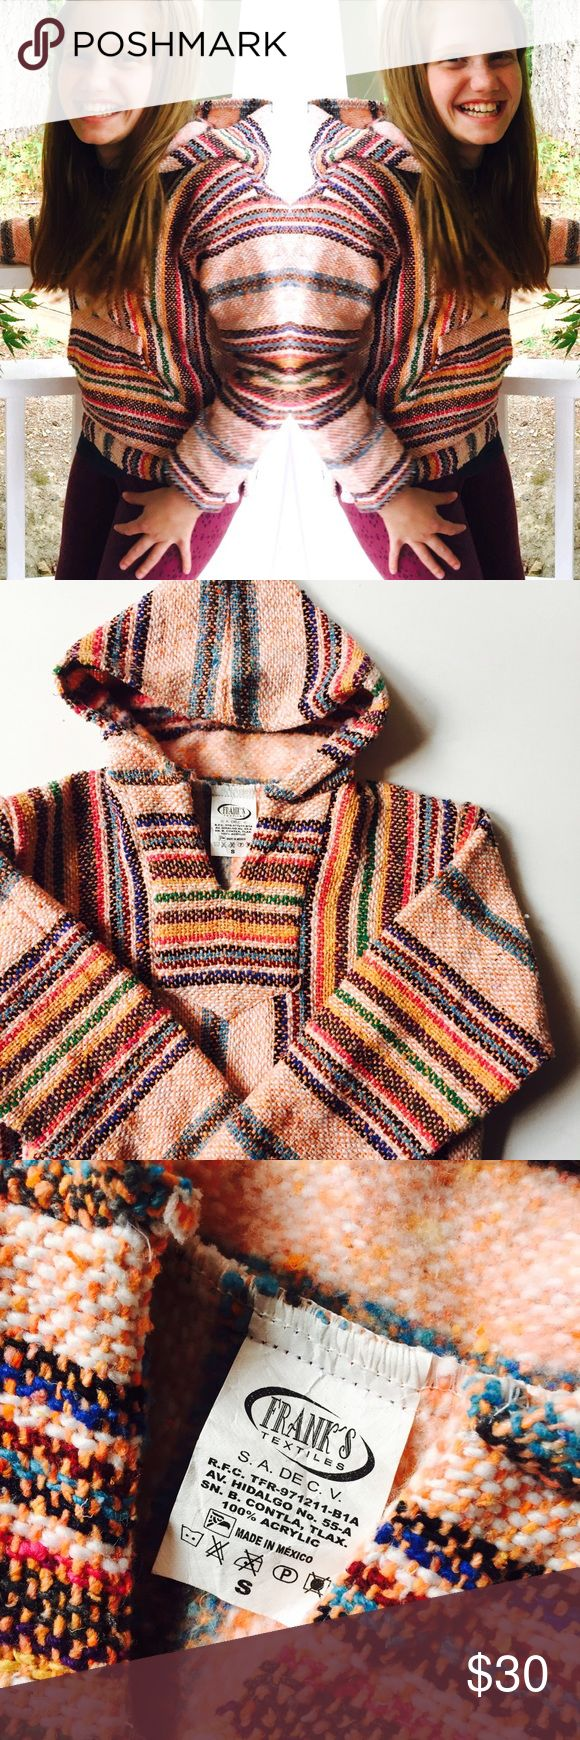 Kids Baja Surfer Hoodie 6-8 Small Some call it the drug rug...others the Baja hoodie. Either way you'll keep your little surfer warm and stylish in this adorable Mexican poncho. Colorful and so cute for a hippie look! The tag says Frank's Textiles size Small. I'd say it fits a kids 6-8 best. Made in Mexico. Could be used for a Halloween costume too😀 Vintage Shirts & Tops Sweatshirts & Hoodies